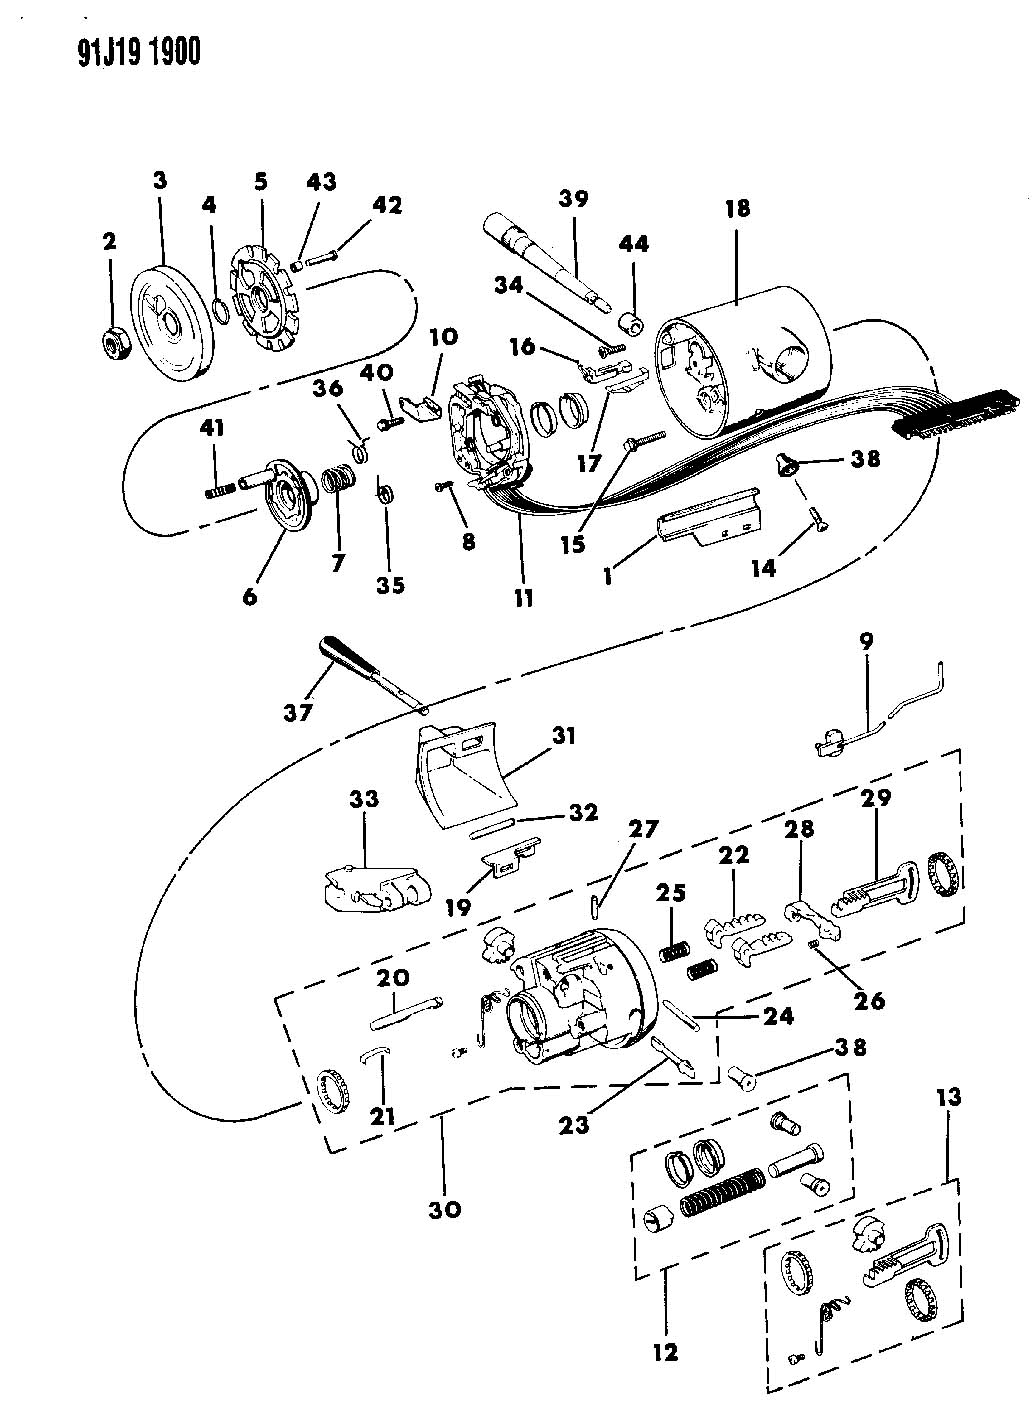 wiring diagrams   1988 bayliner capri fuse box wiring